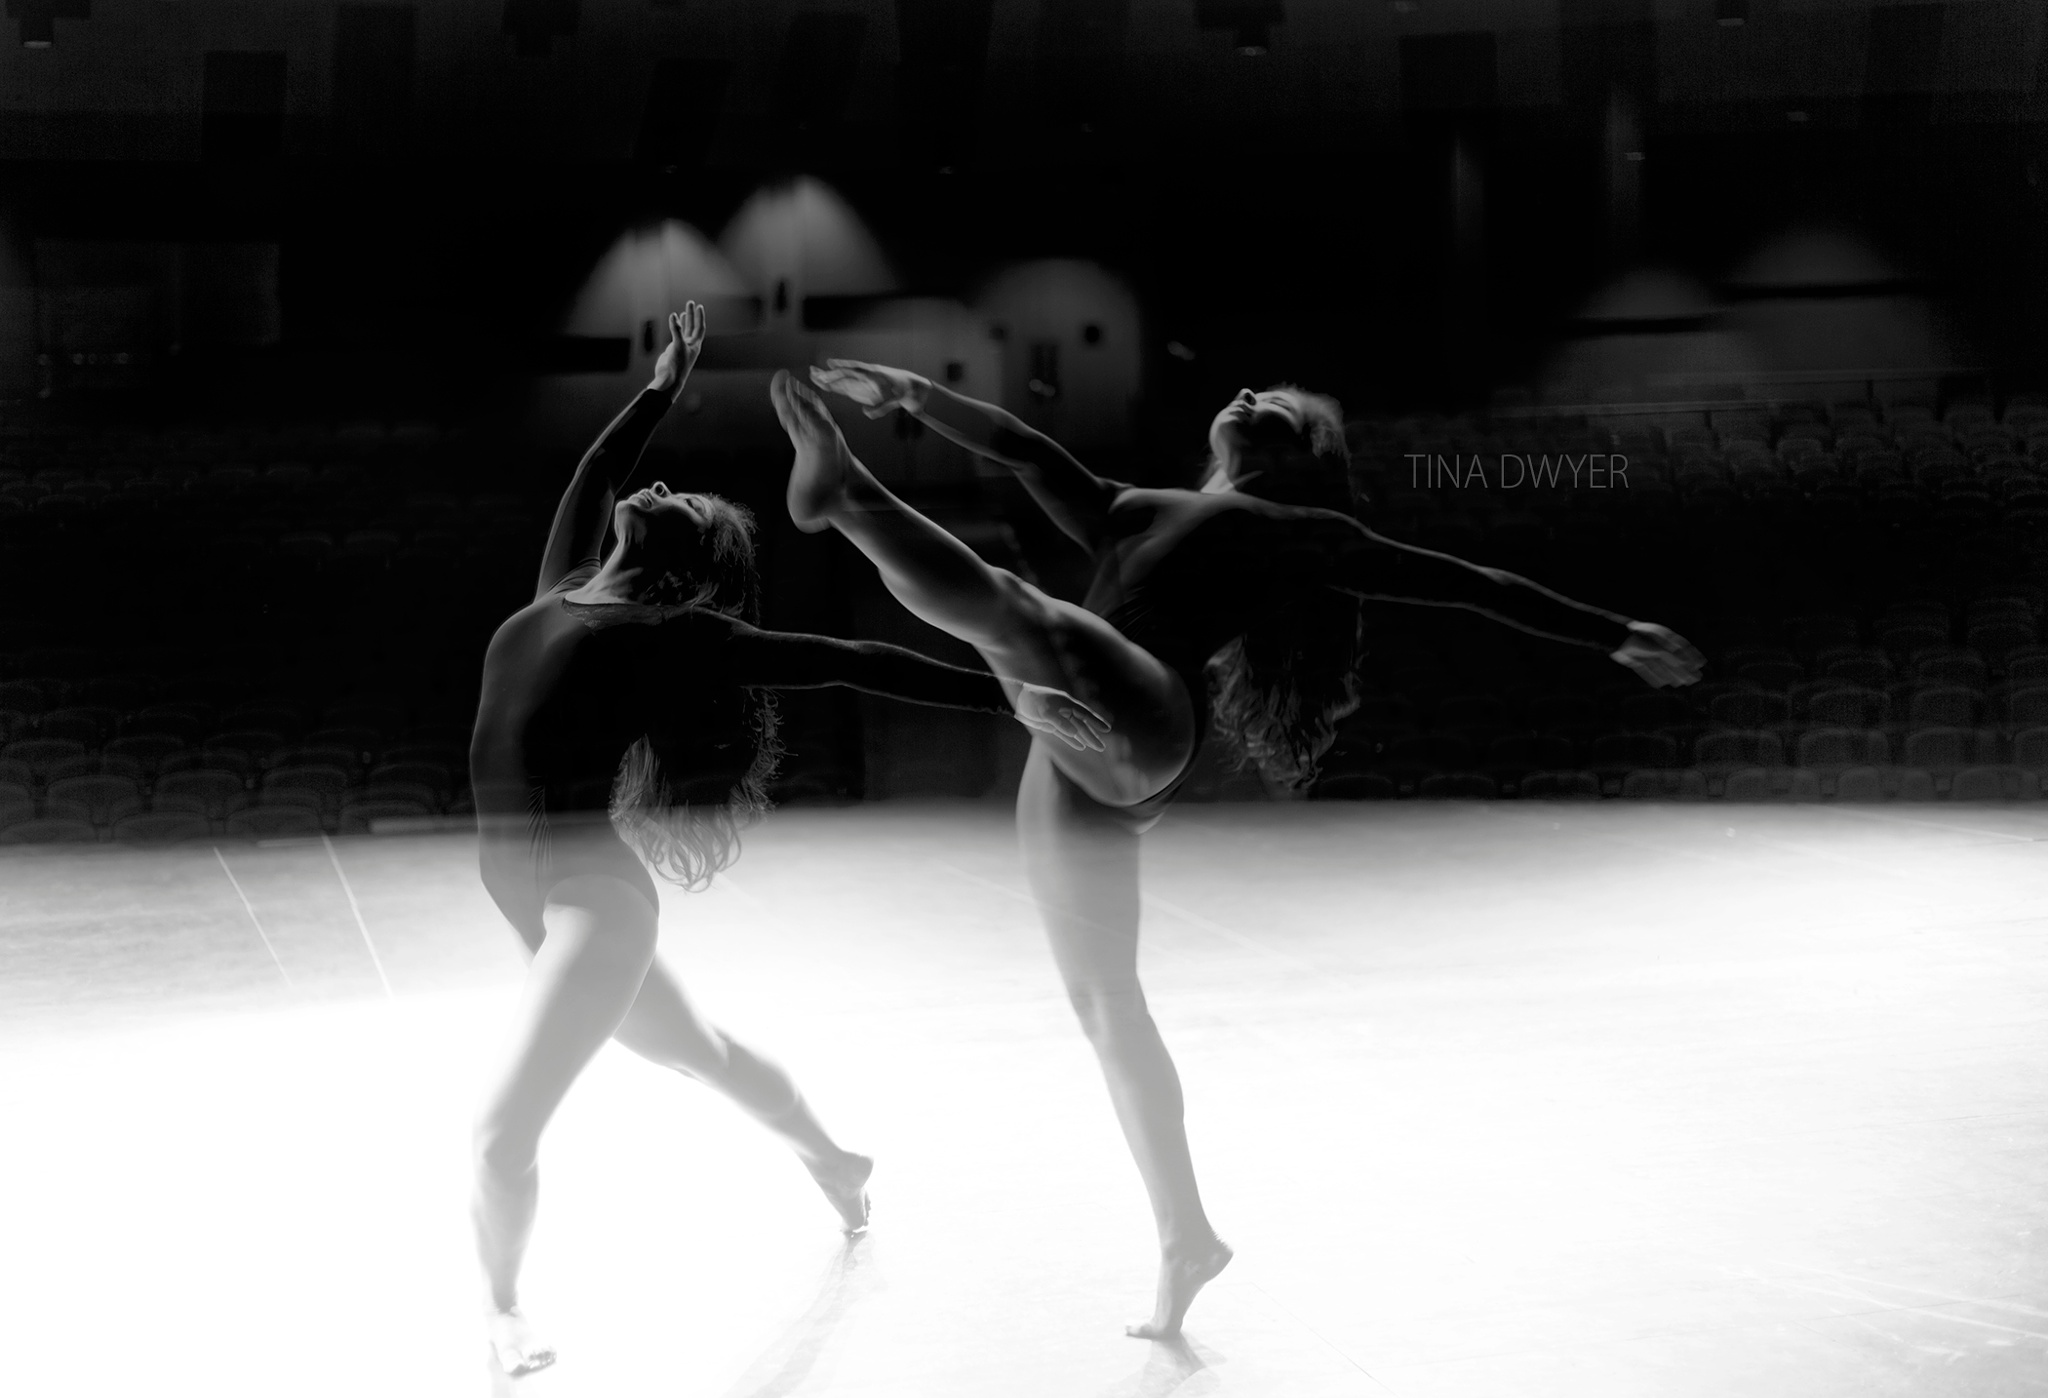 The Dance by Tina Dwyer